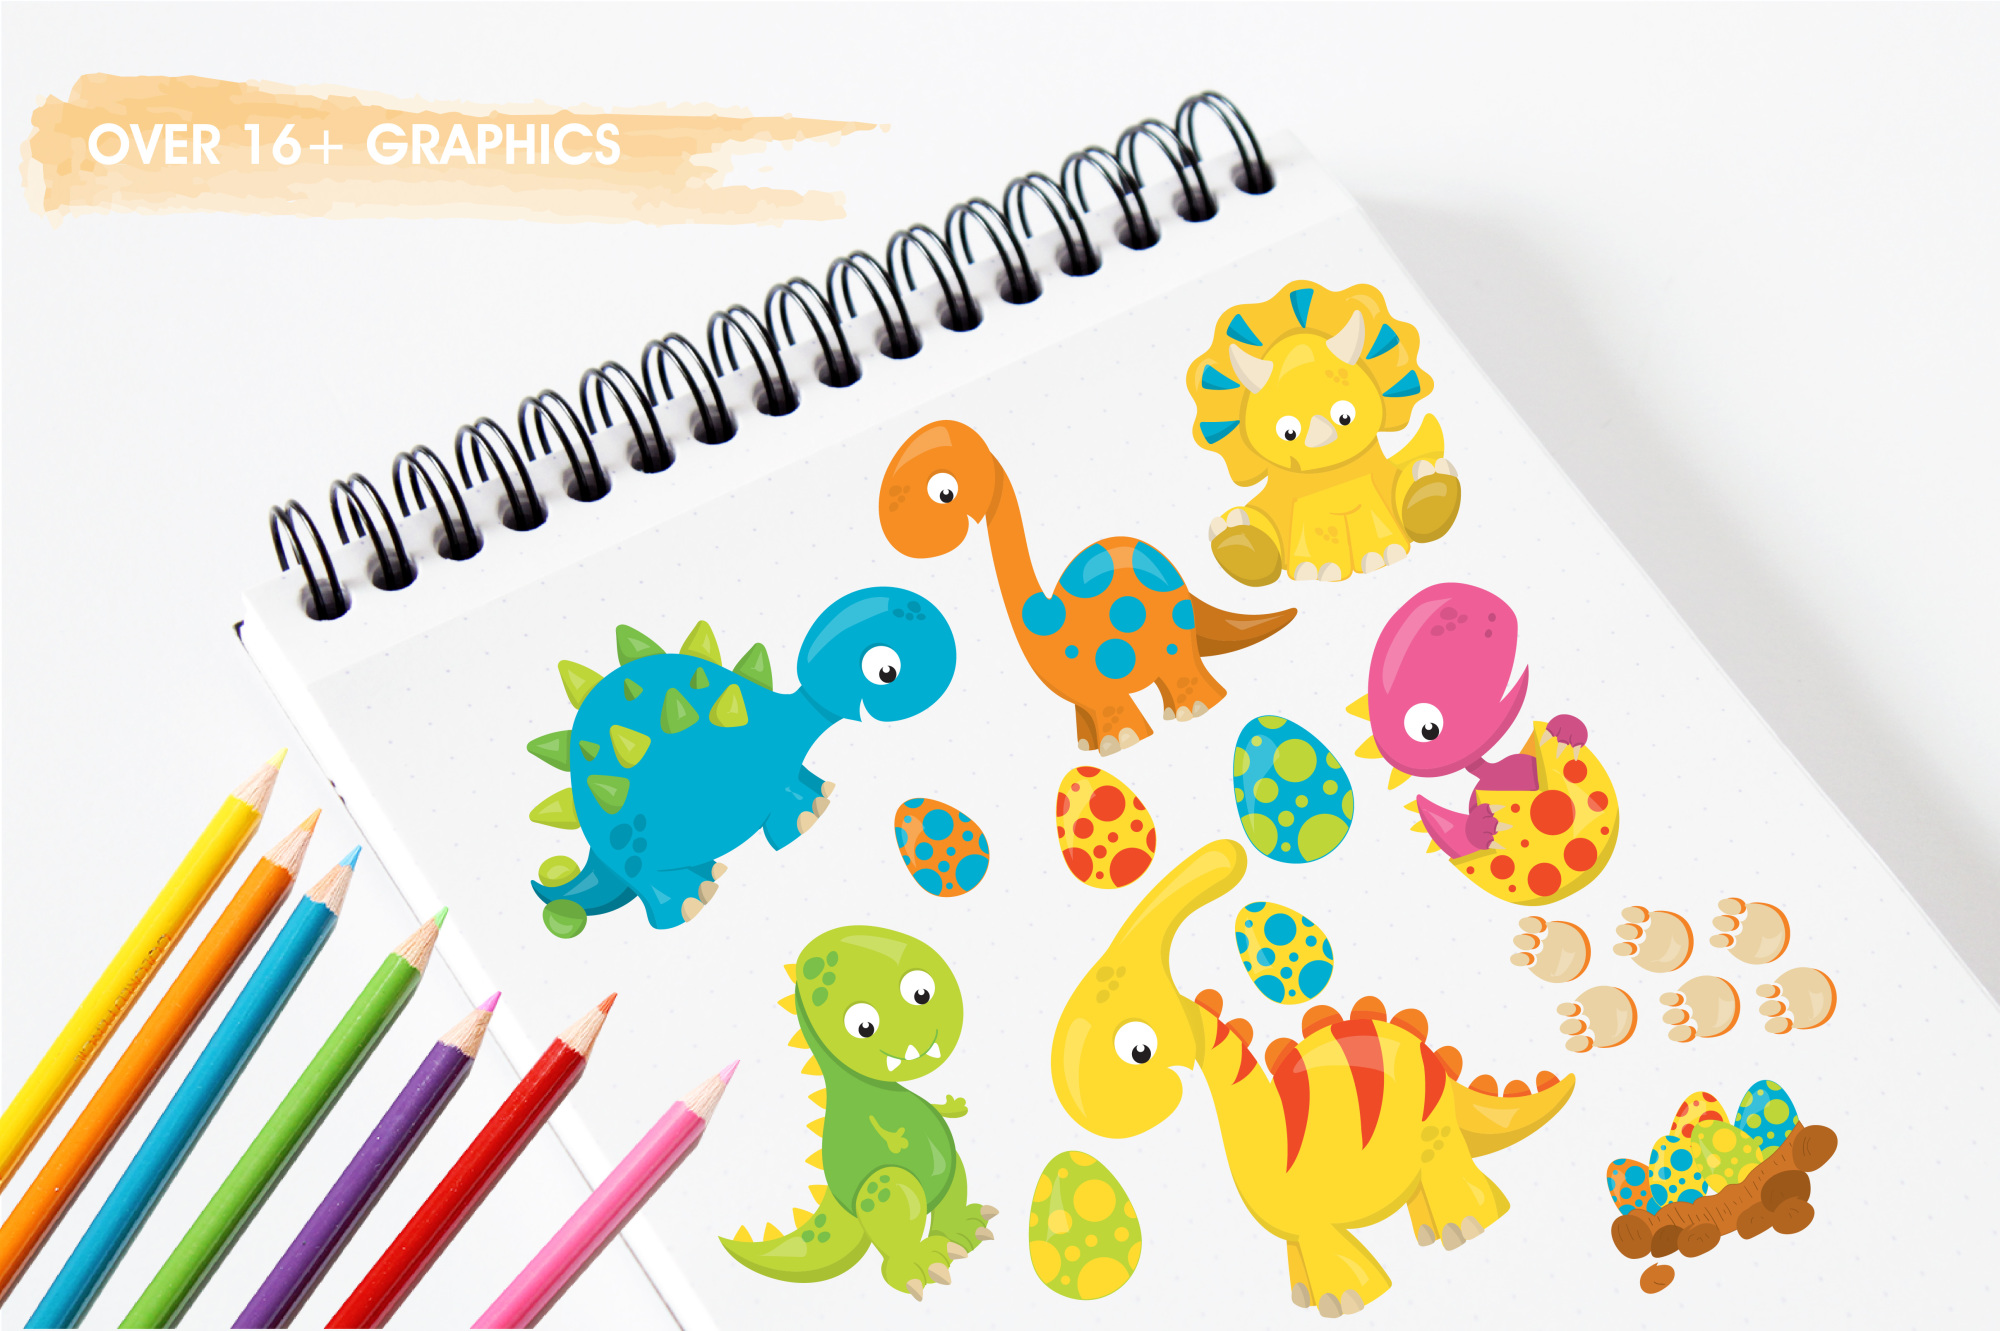 Dinosaur Babies graphics and illustrations example image 3